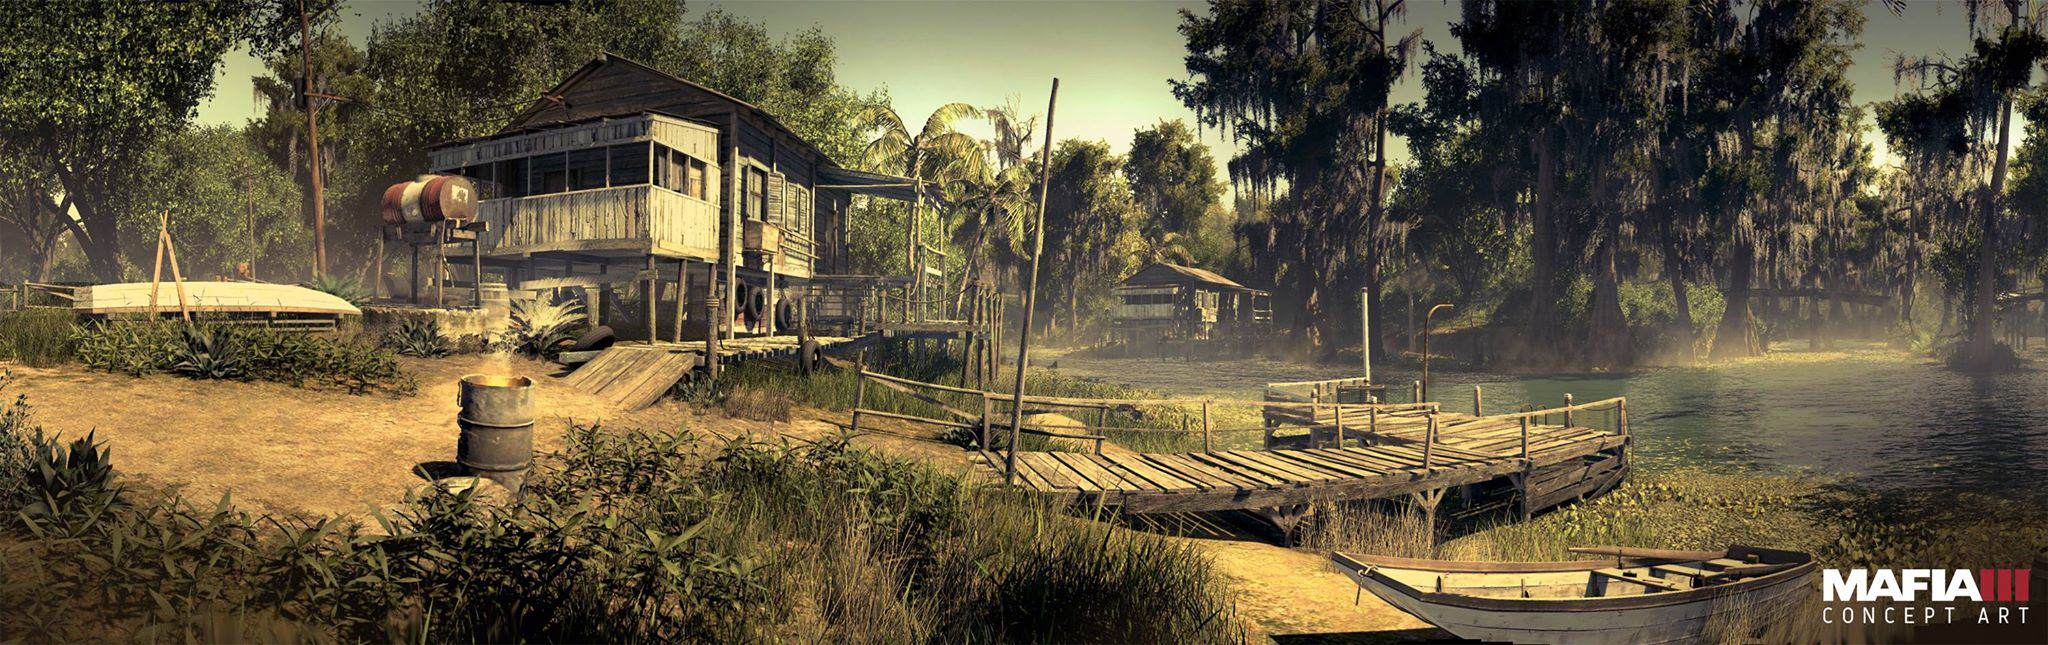 Check Out Every Awesome Piece Of Mafia 3 Concept Art Released mafia3 bayou concept art